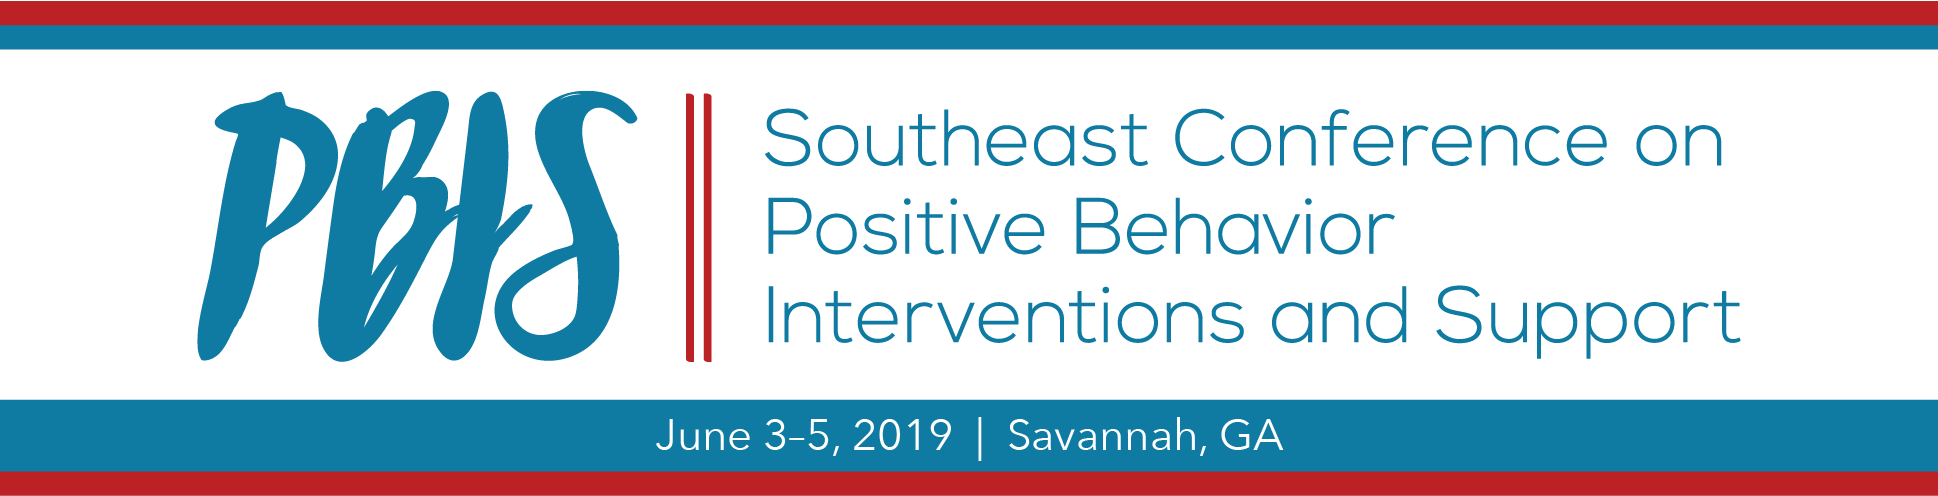 Southeast Conference on Positive Behavior Interventions and Support (PBIS)